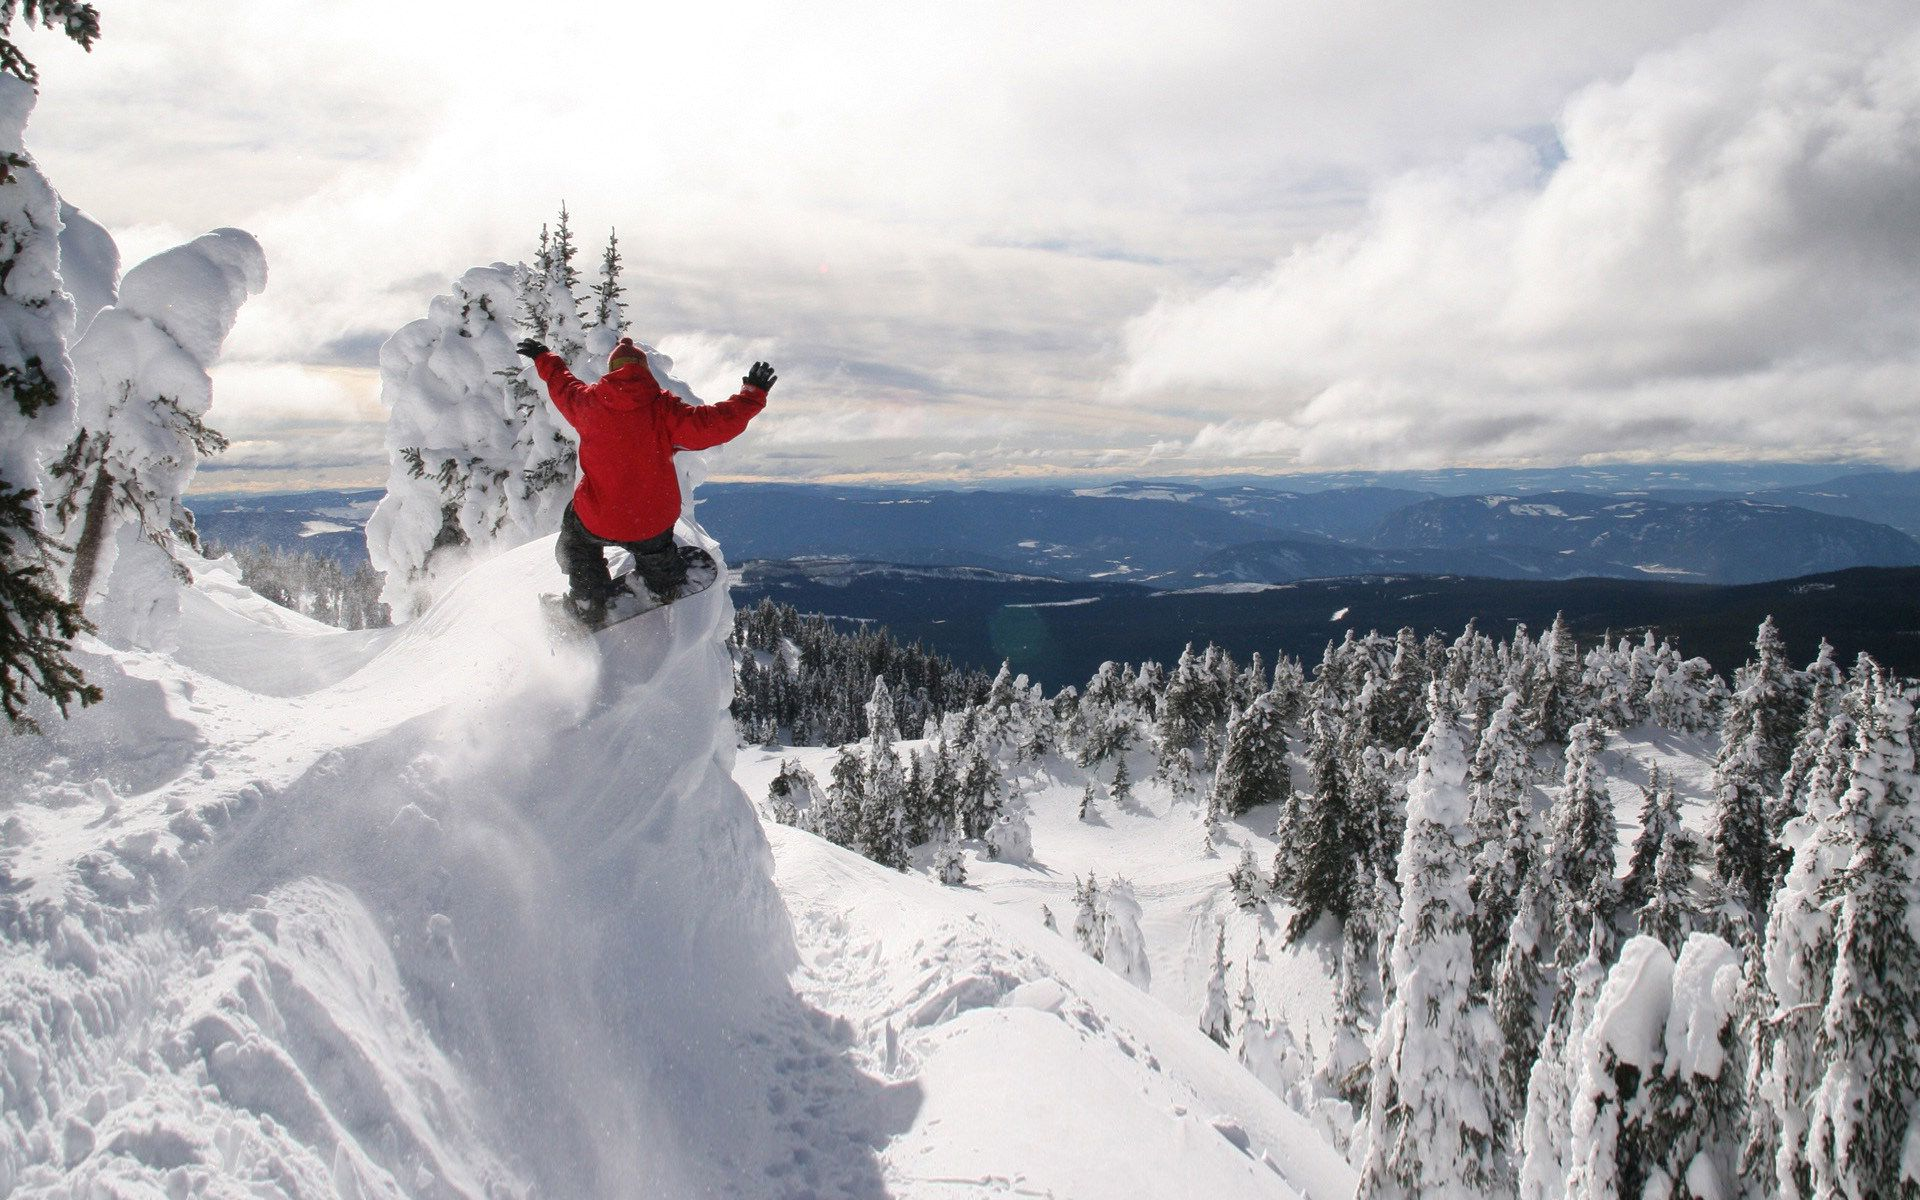 snowboard outdoor wallpaper desktop - photo #7